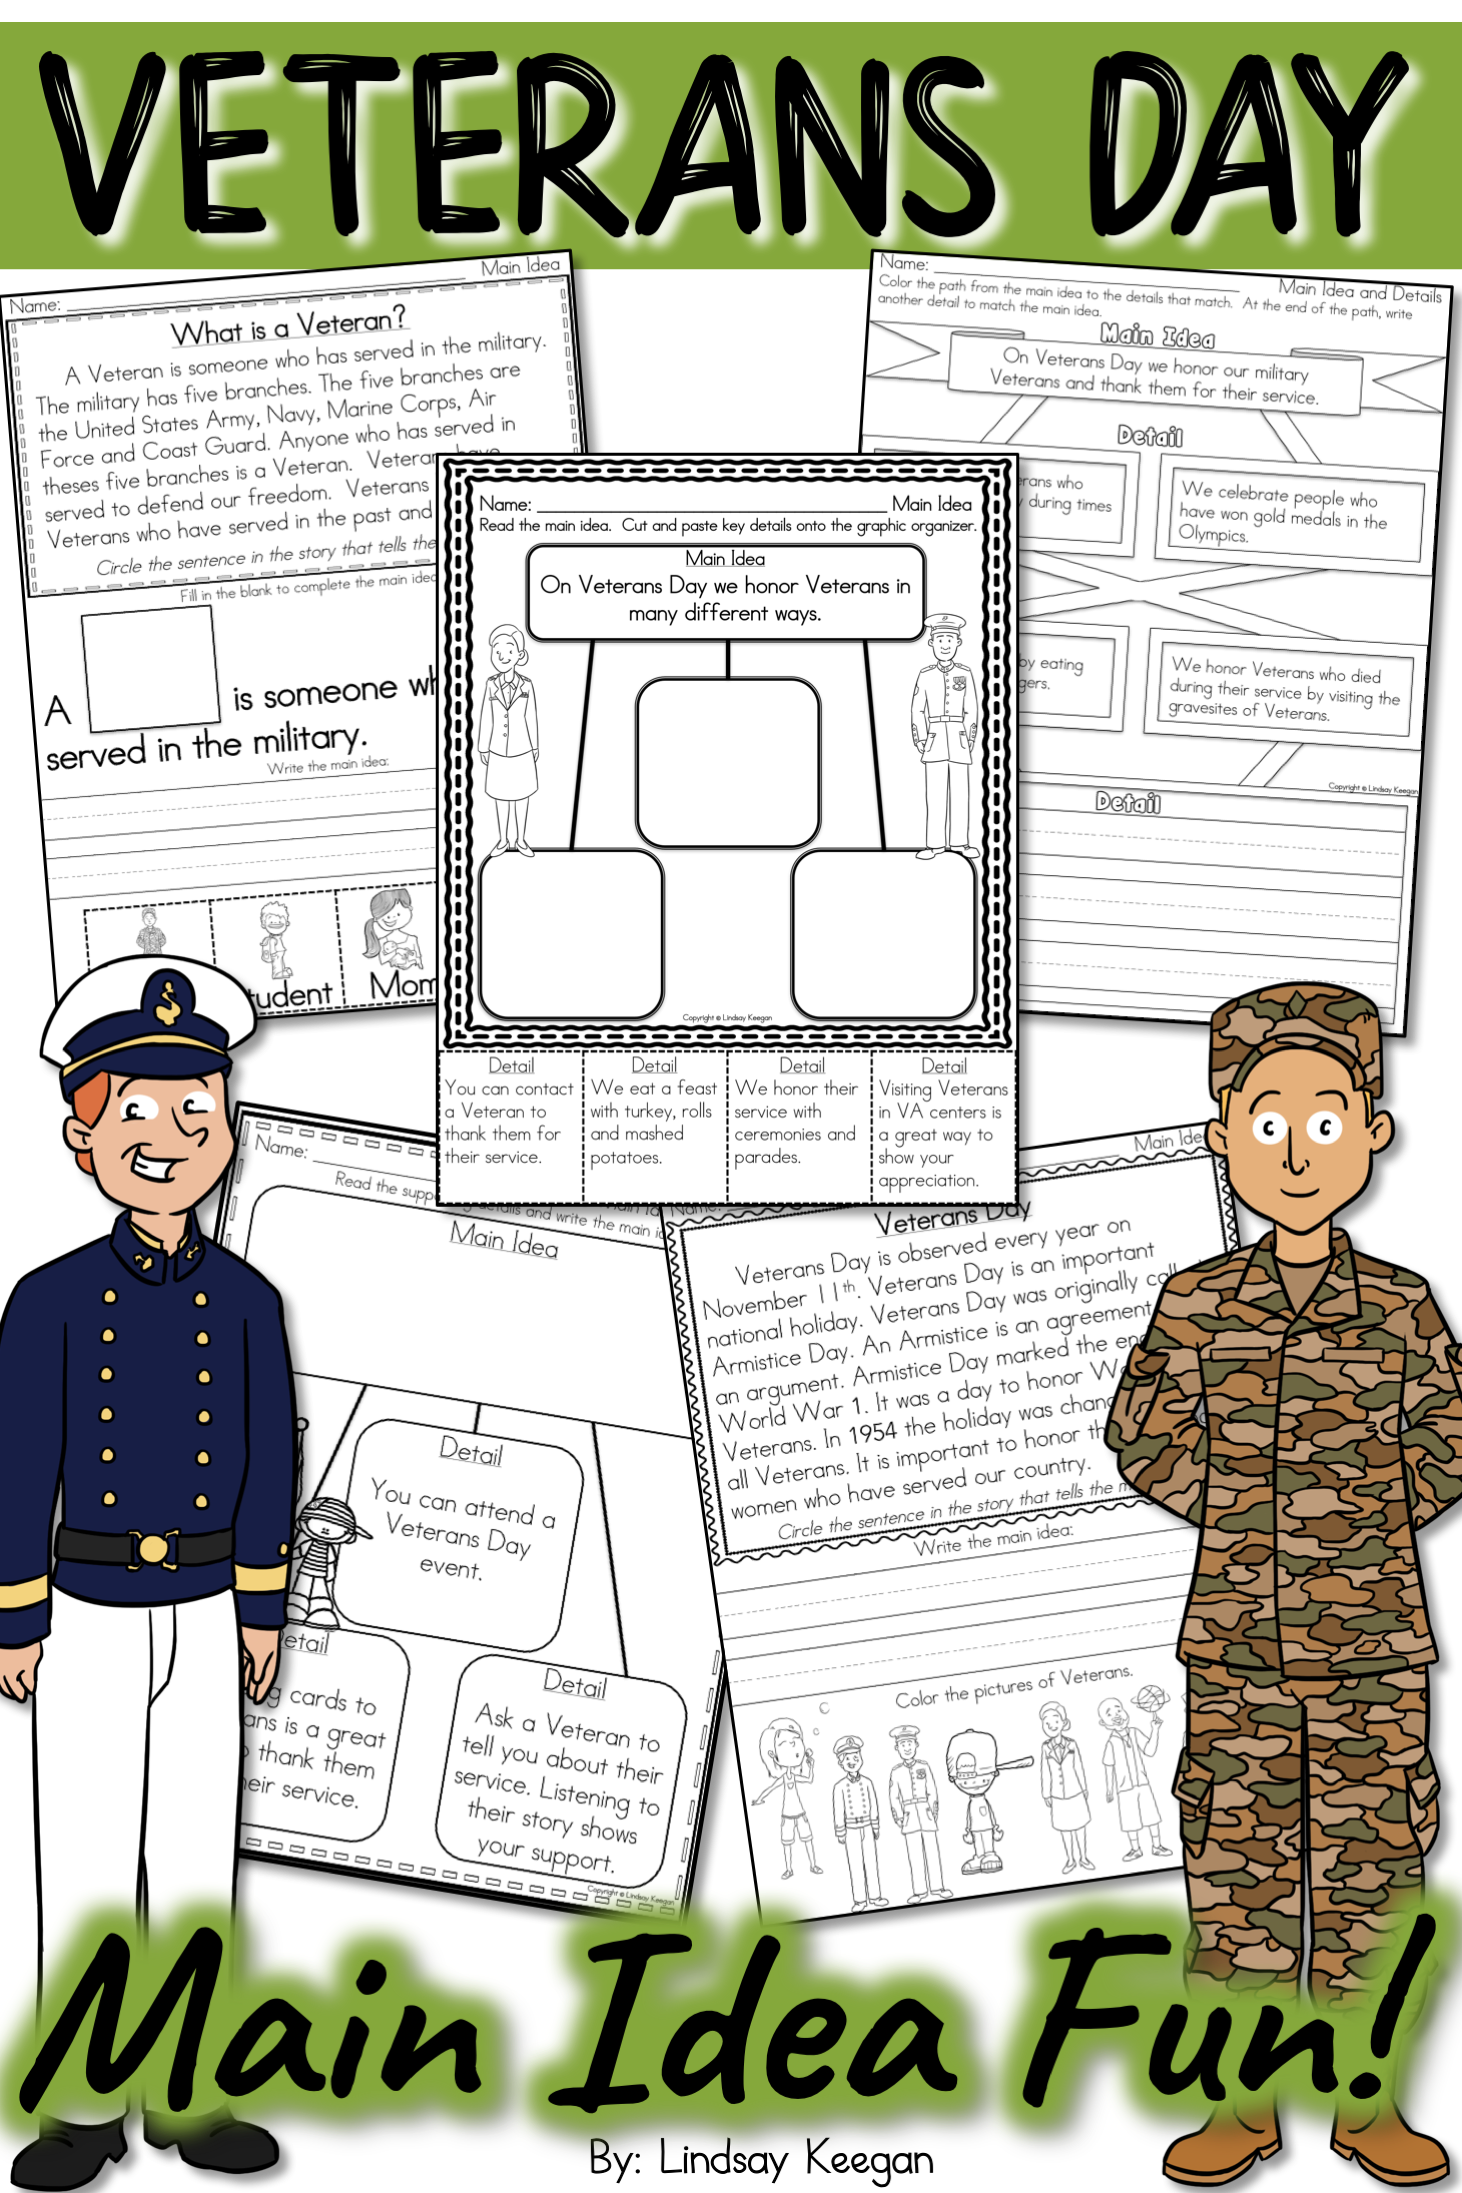 Students Will Enjoy Learning About Veterans Day While